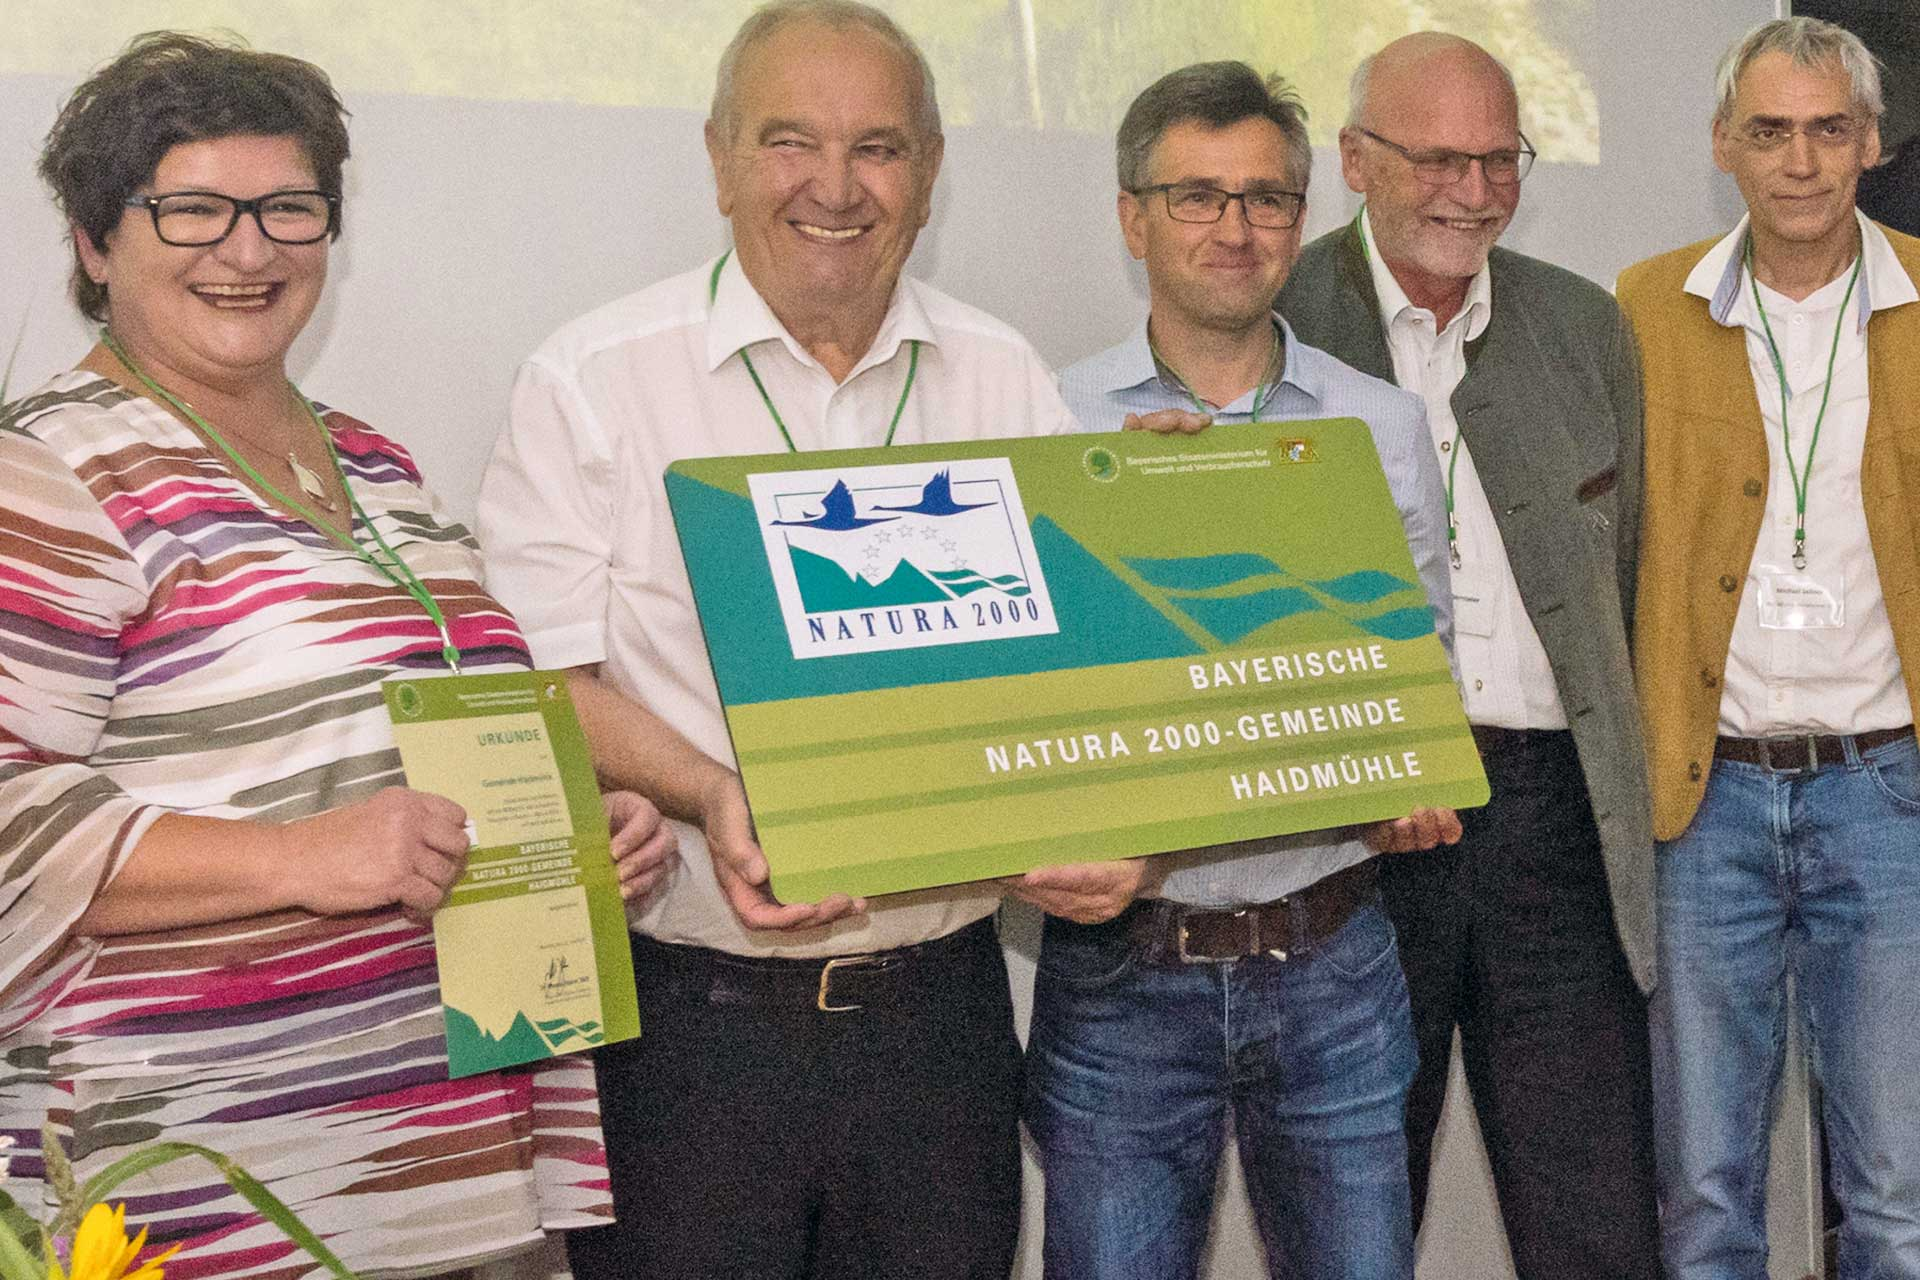 5 people of Haidmühle accept the Natura 2000 award.